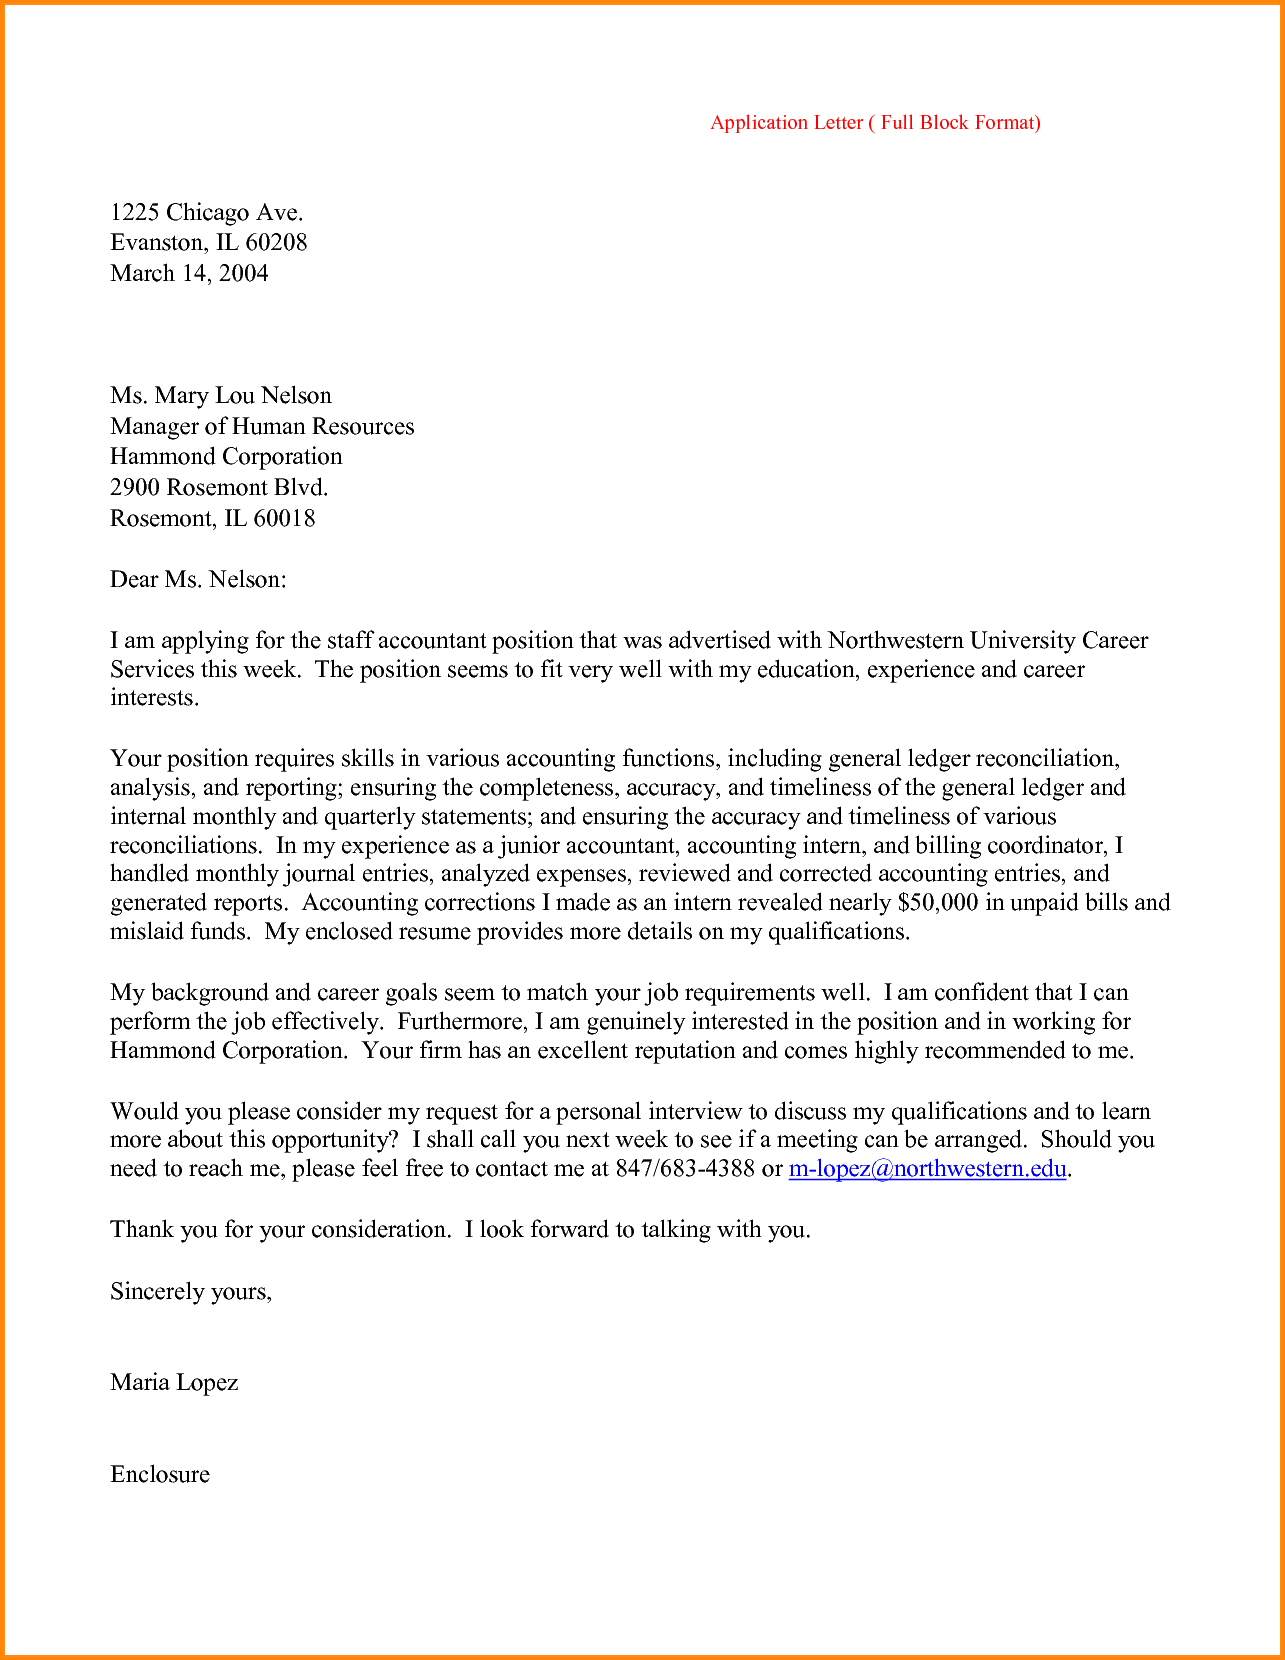 Job Application Letter For Accountant Solicited Fresh